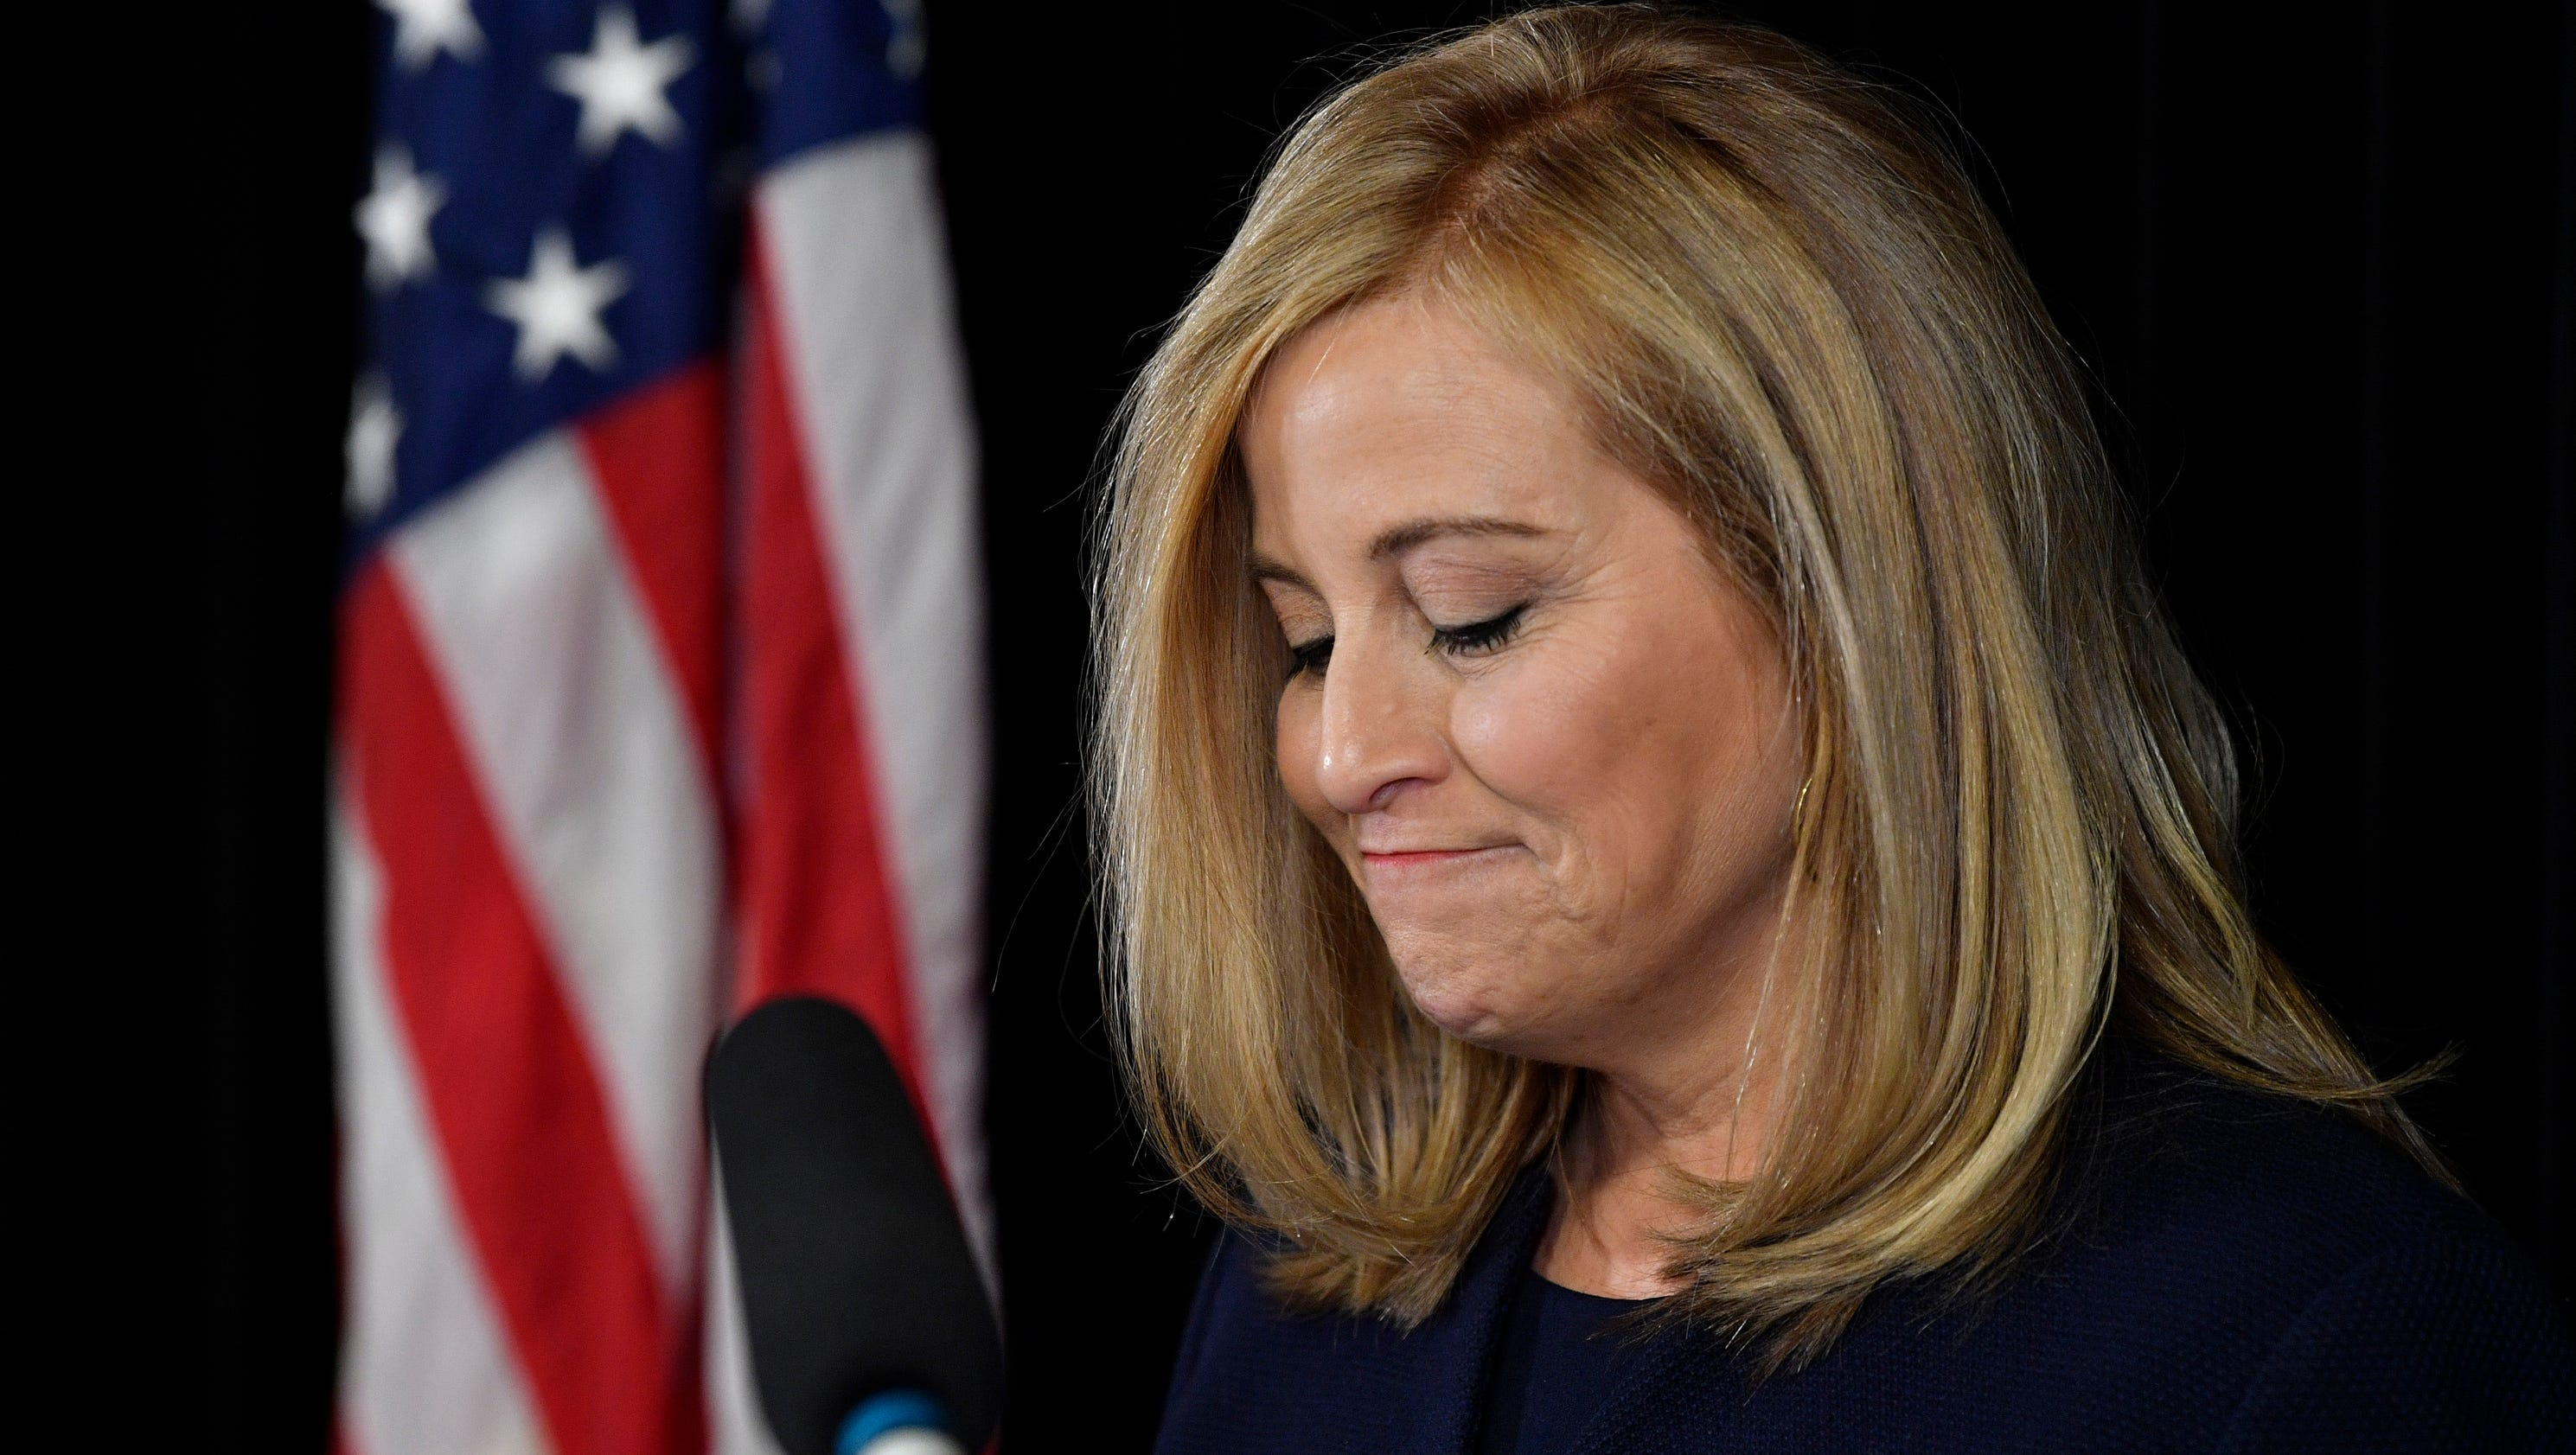 Nashville Mayor resigns weeks after admitting affair with security chief